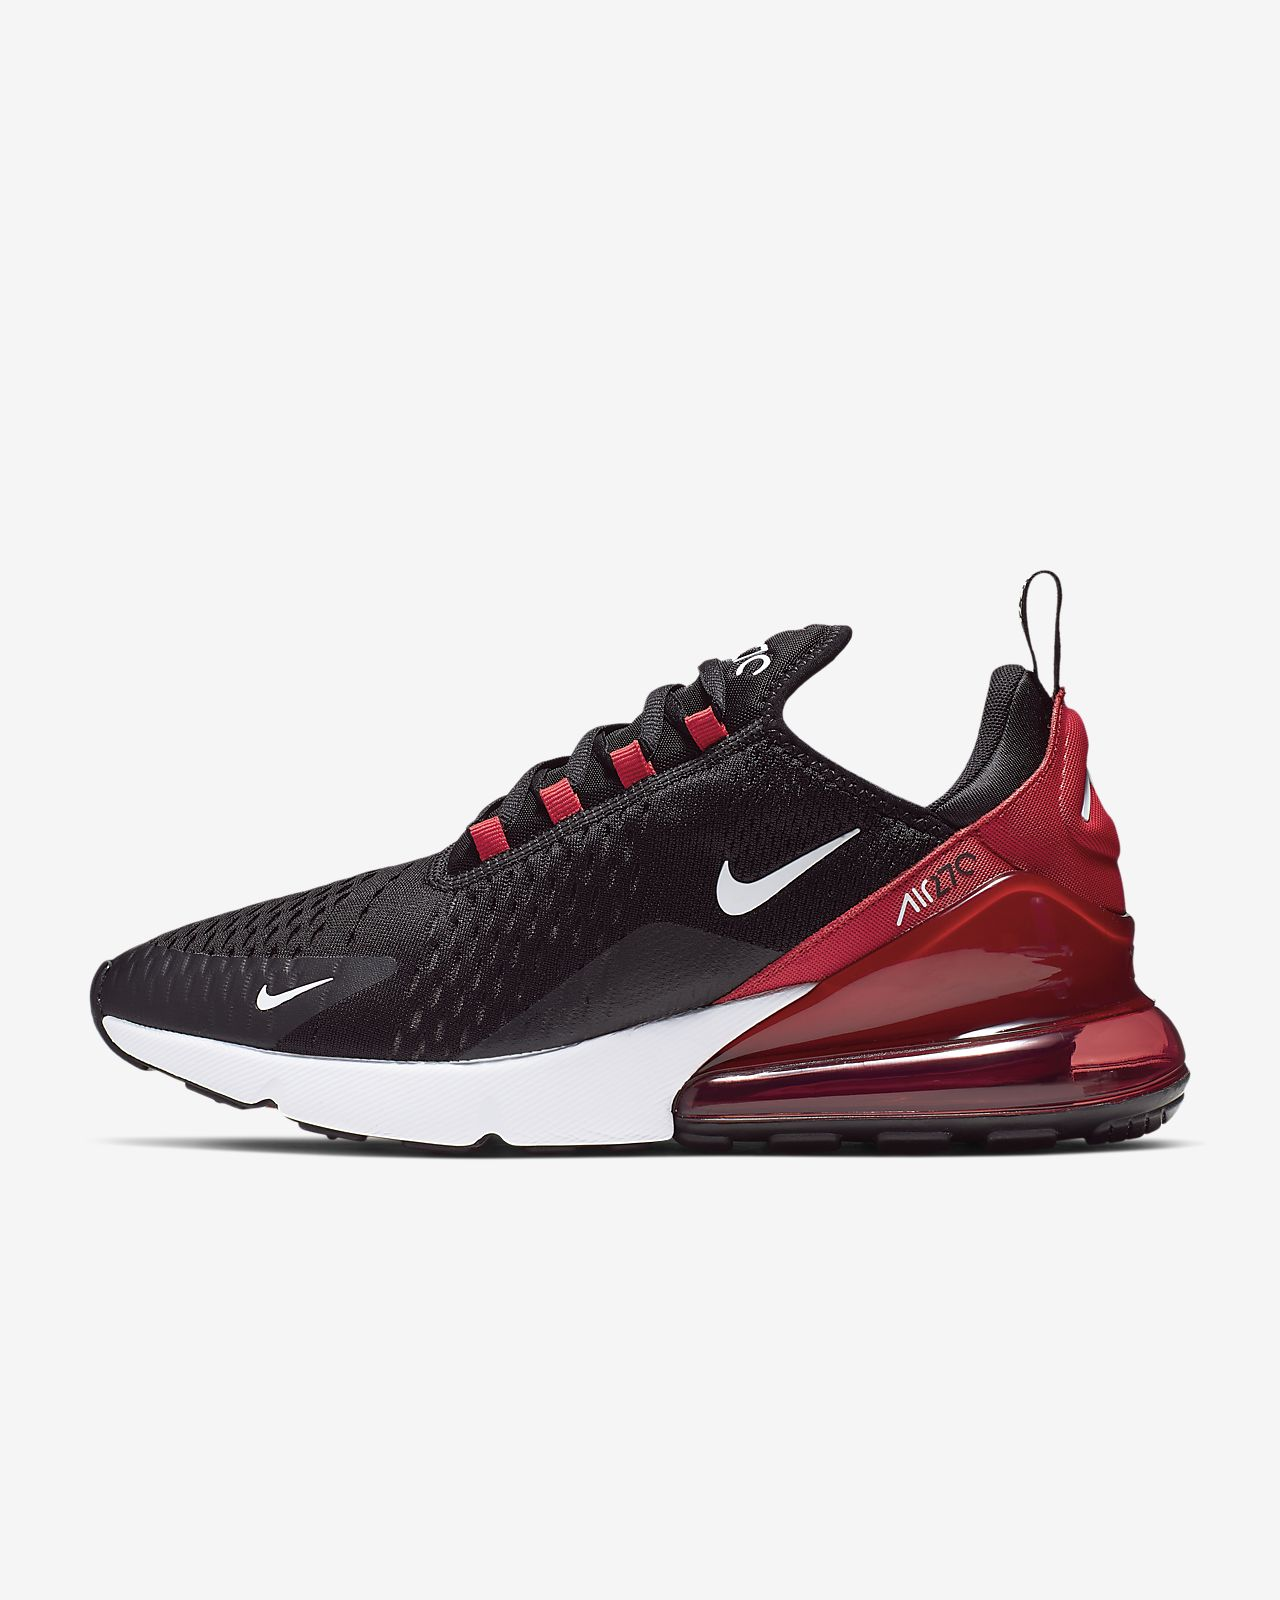 huge selection of 7fa1e 93f5e ... Sko Nike Air Max 270 för män